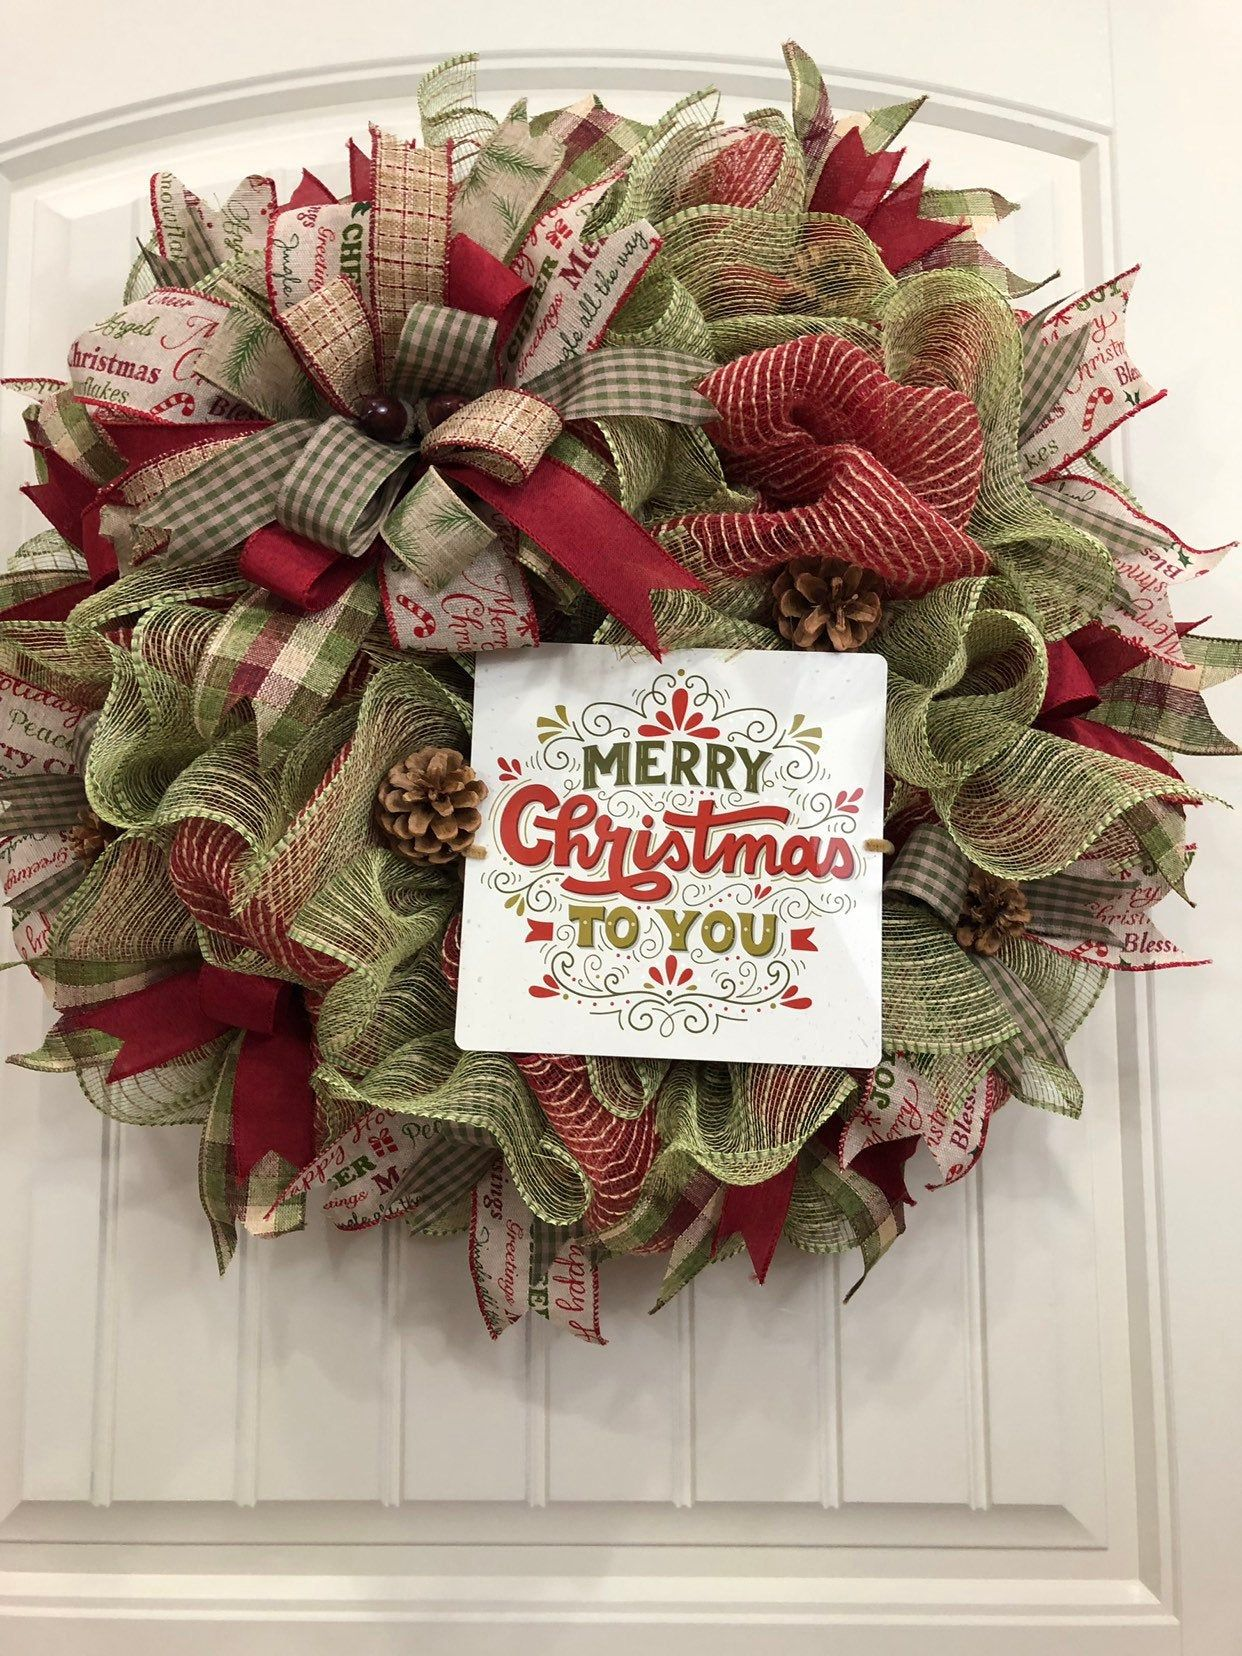 Kats Creations 777 Holiday Front Door Decor Merry Christmas Wreath Red Blue White Xmas Wreath